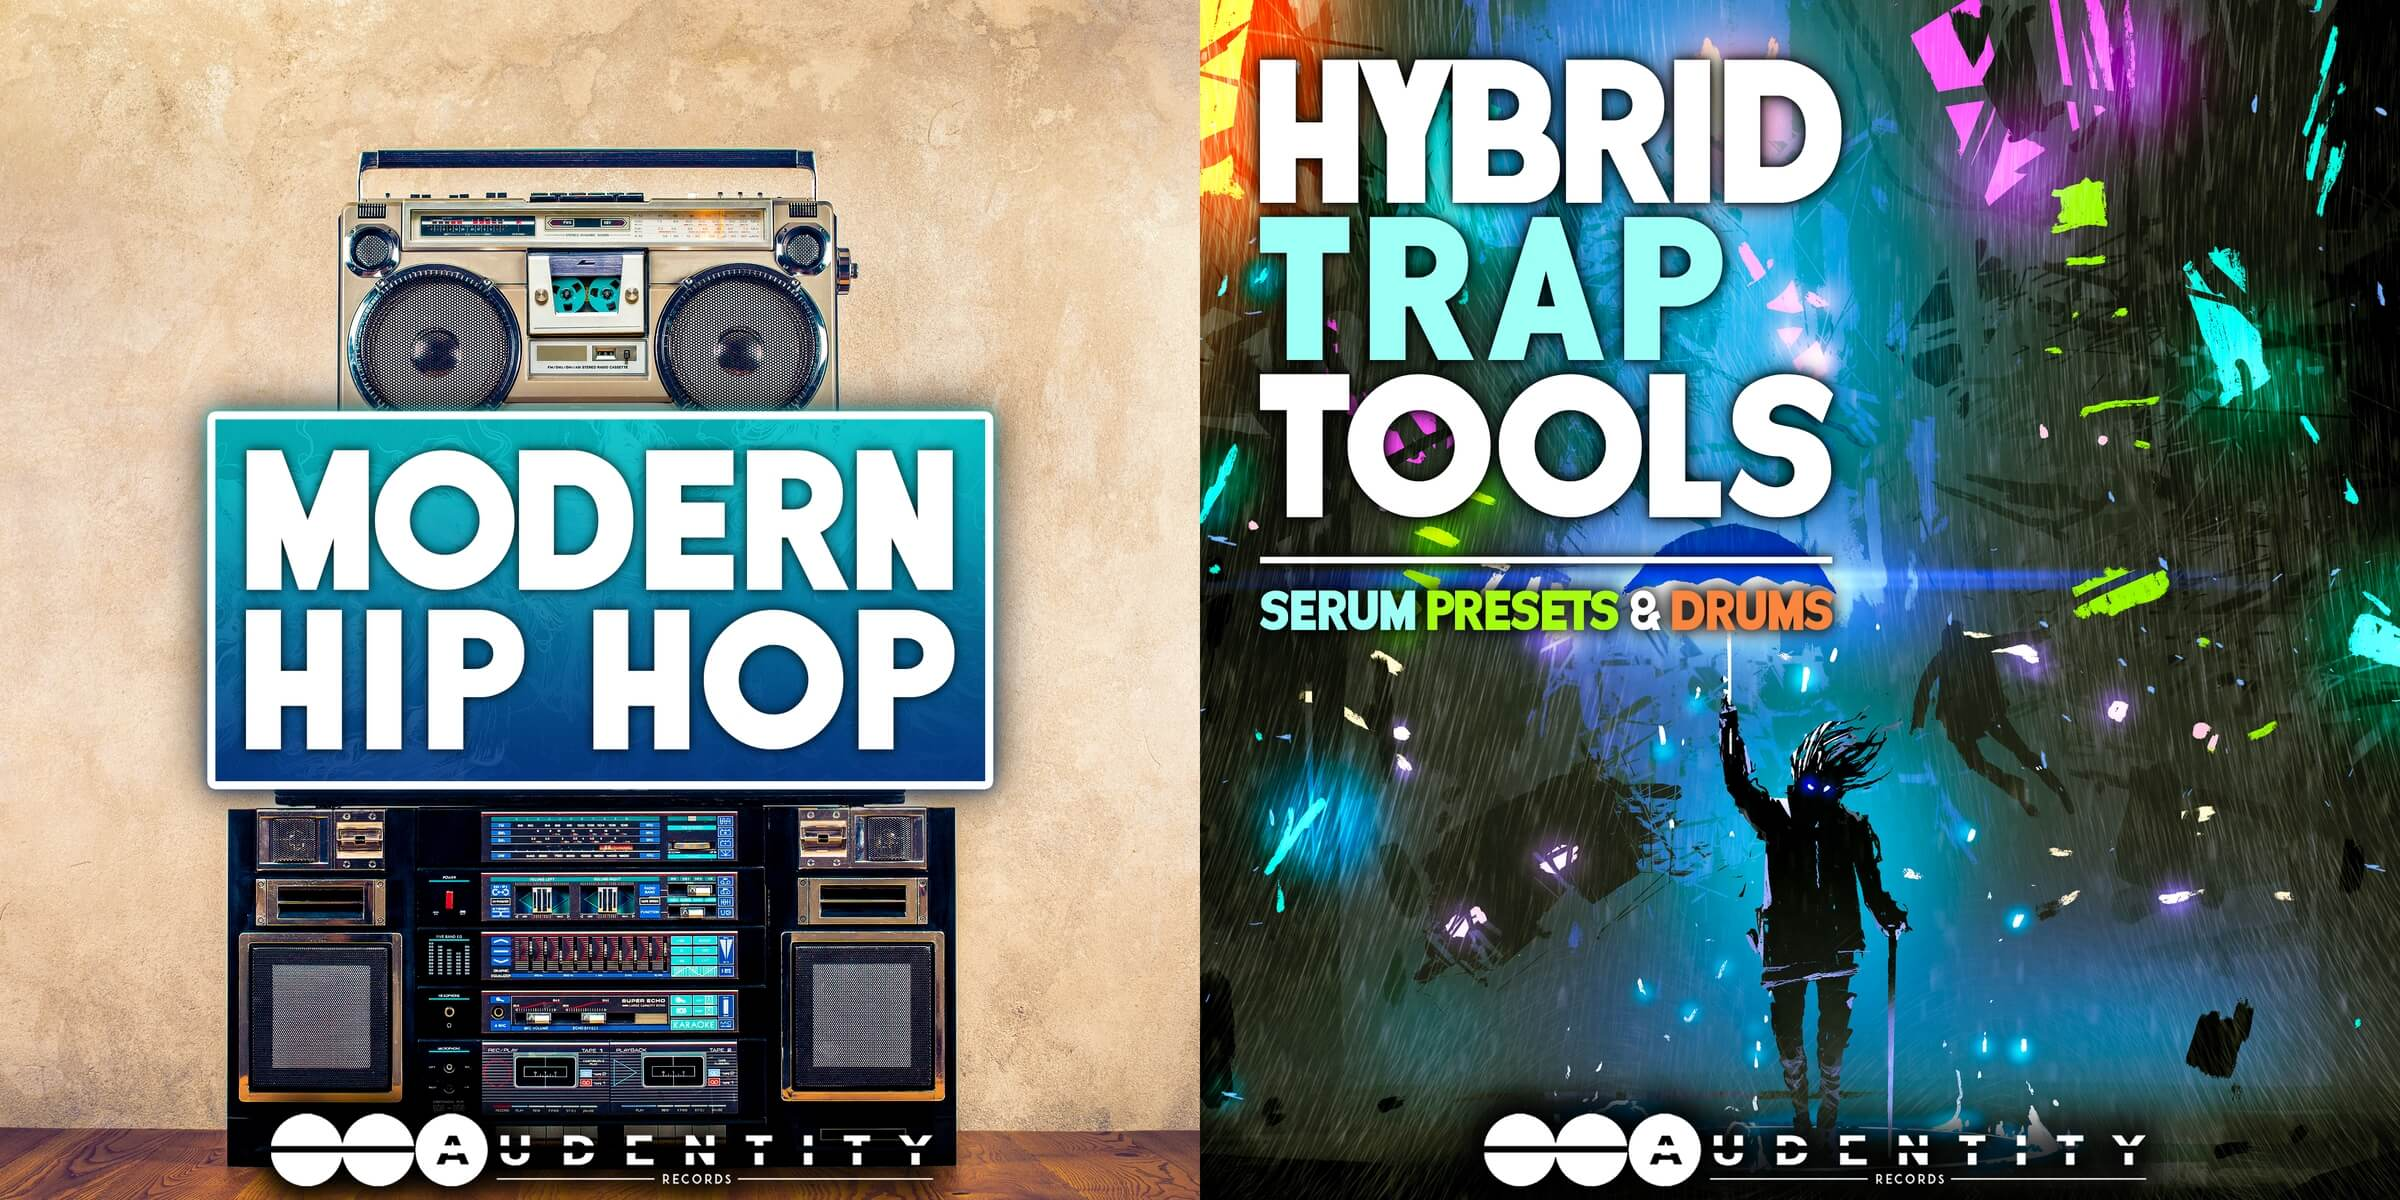 Hybrid Trap Tools by Audentity Records combines Serum